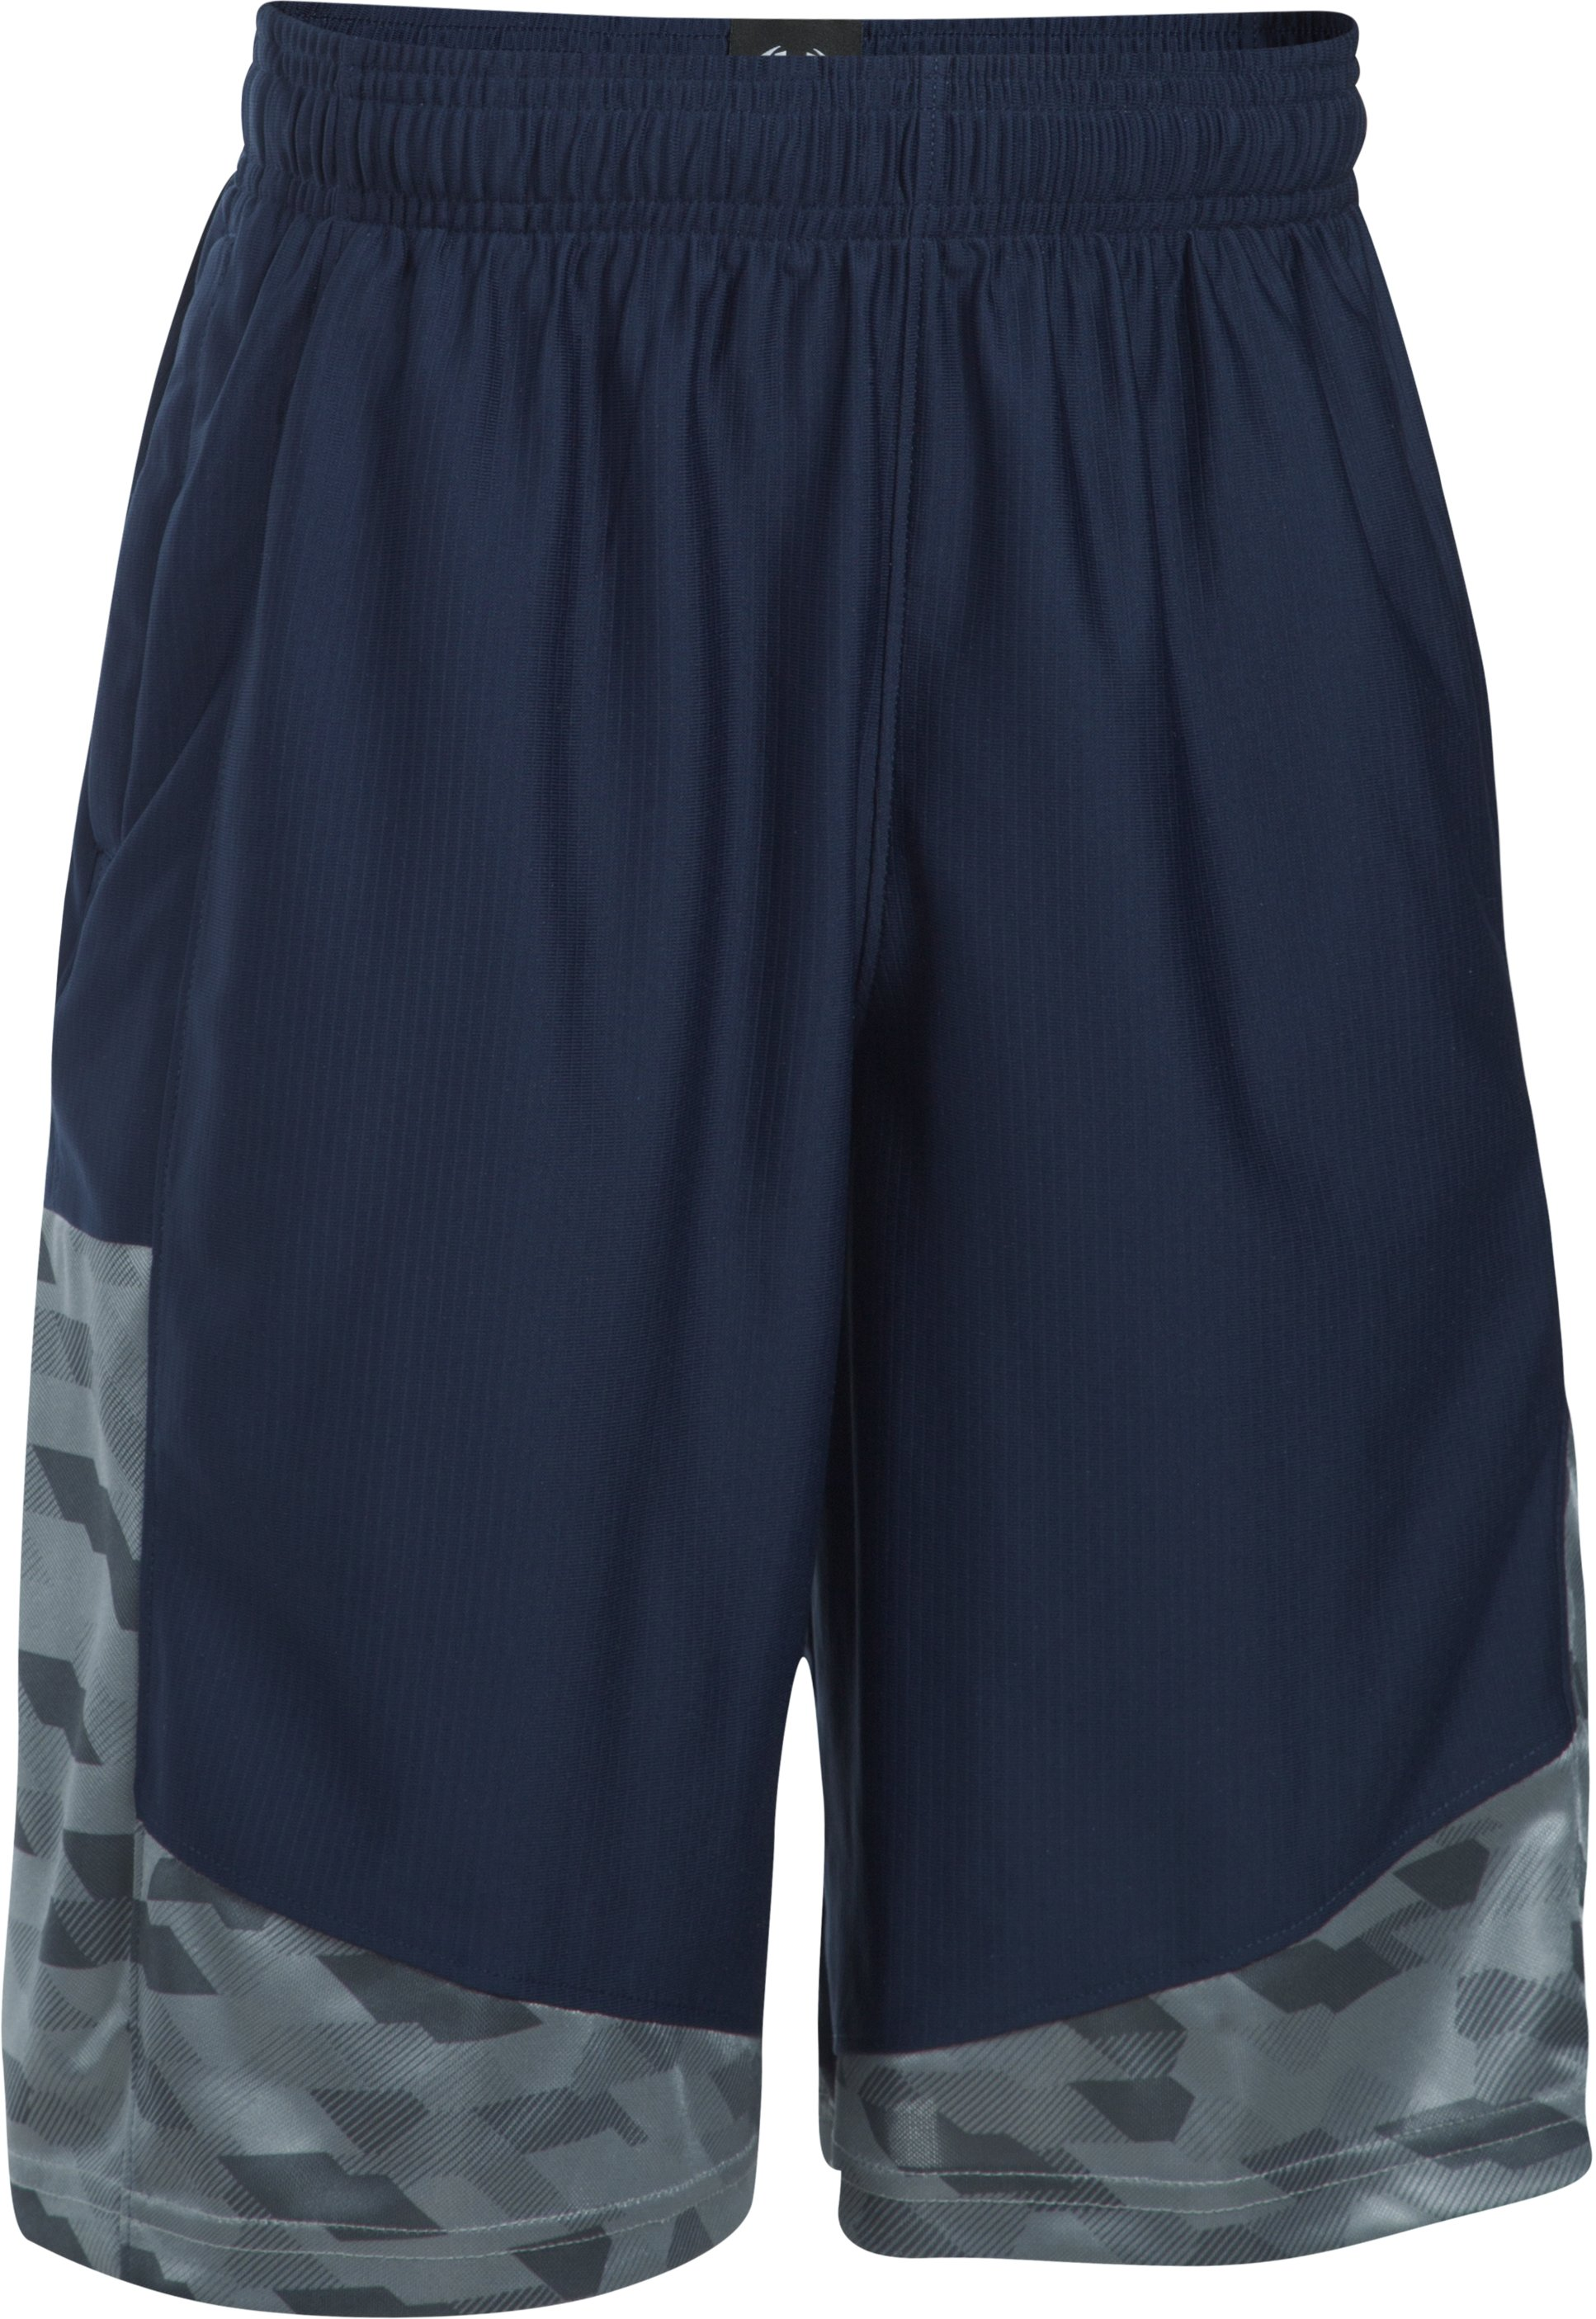 Boys' SC30 Performance Shorts, Midnight Navy, zoomed image